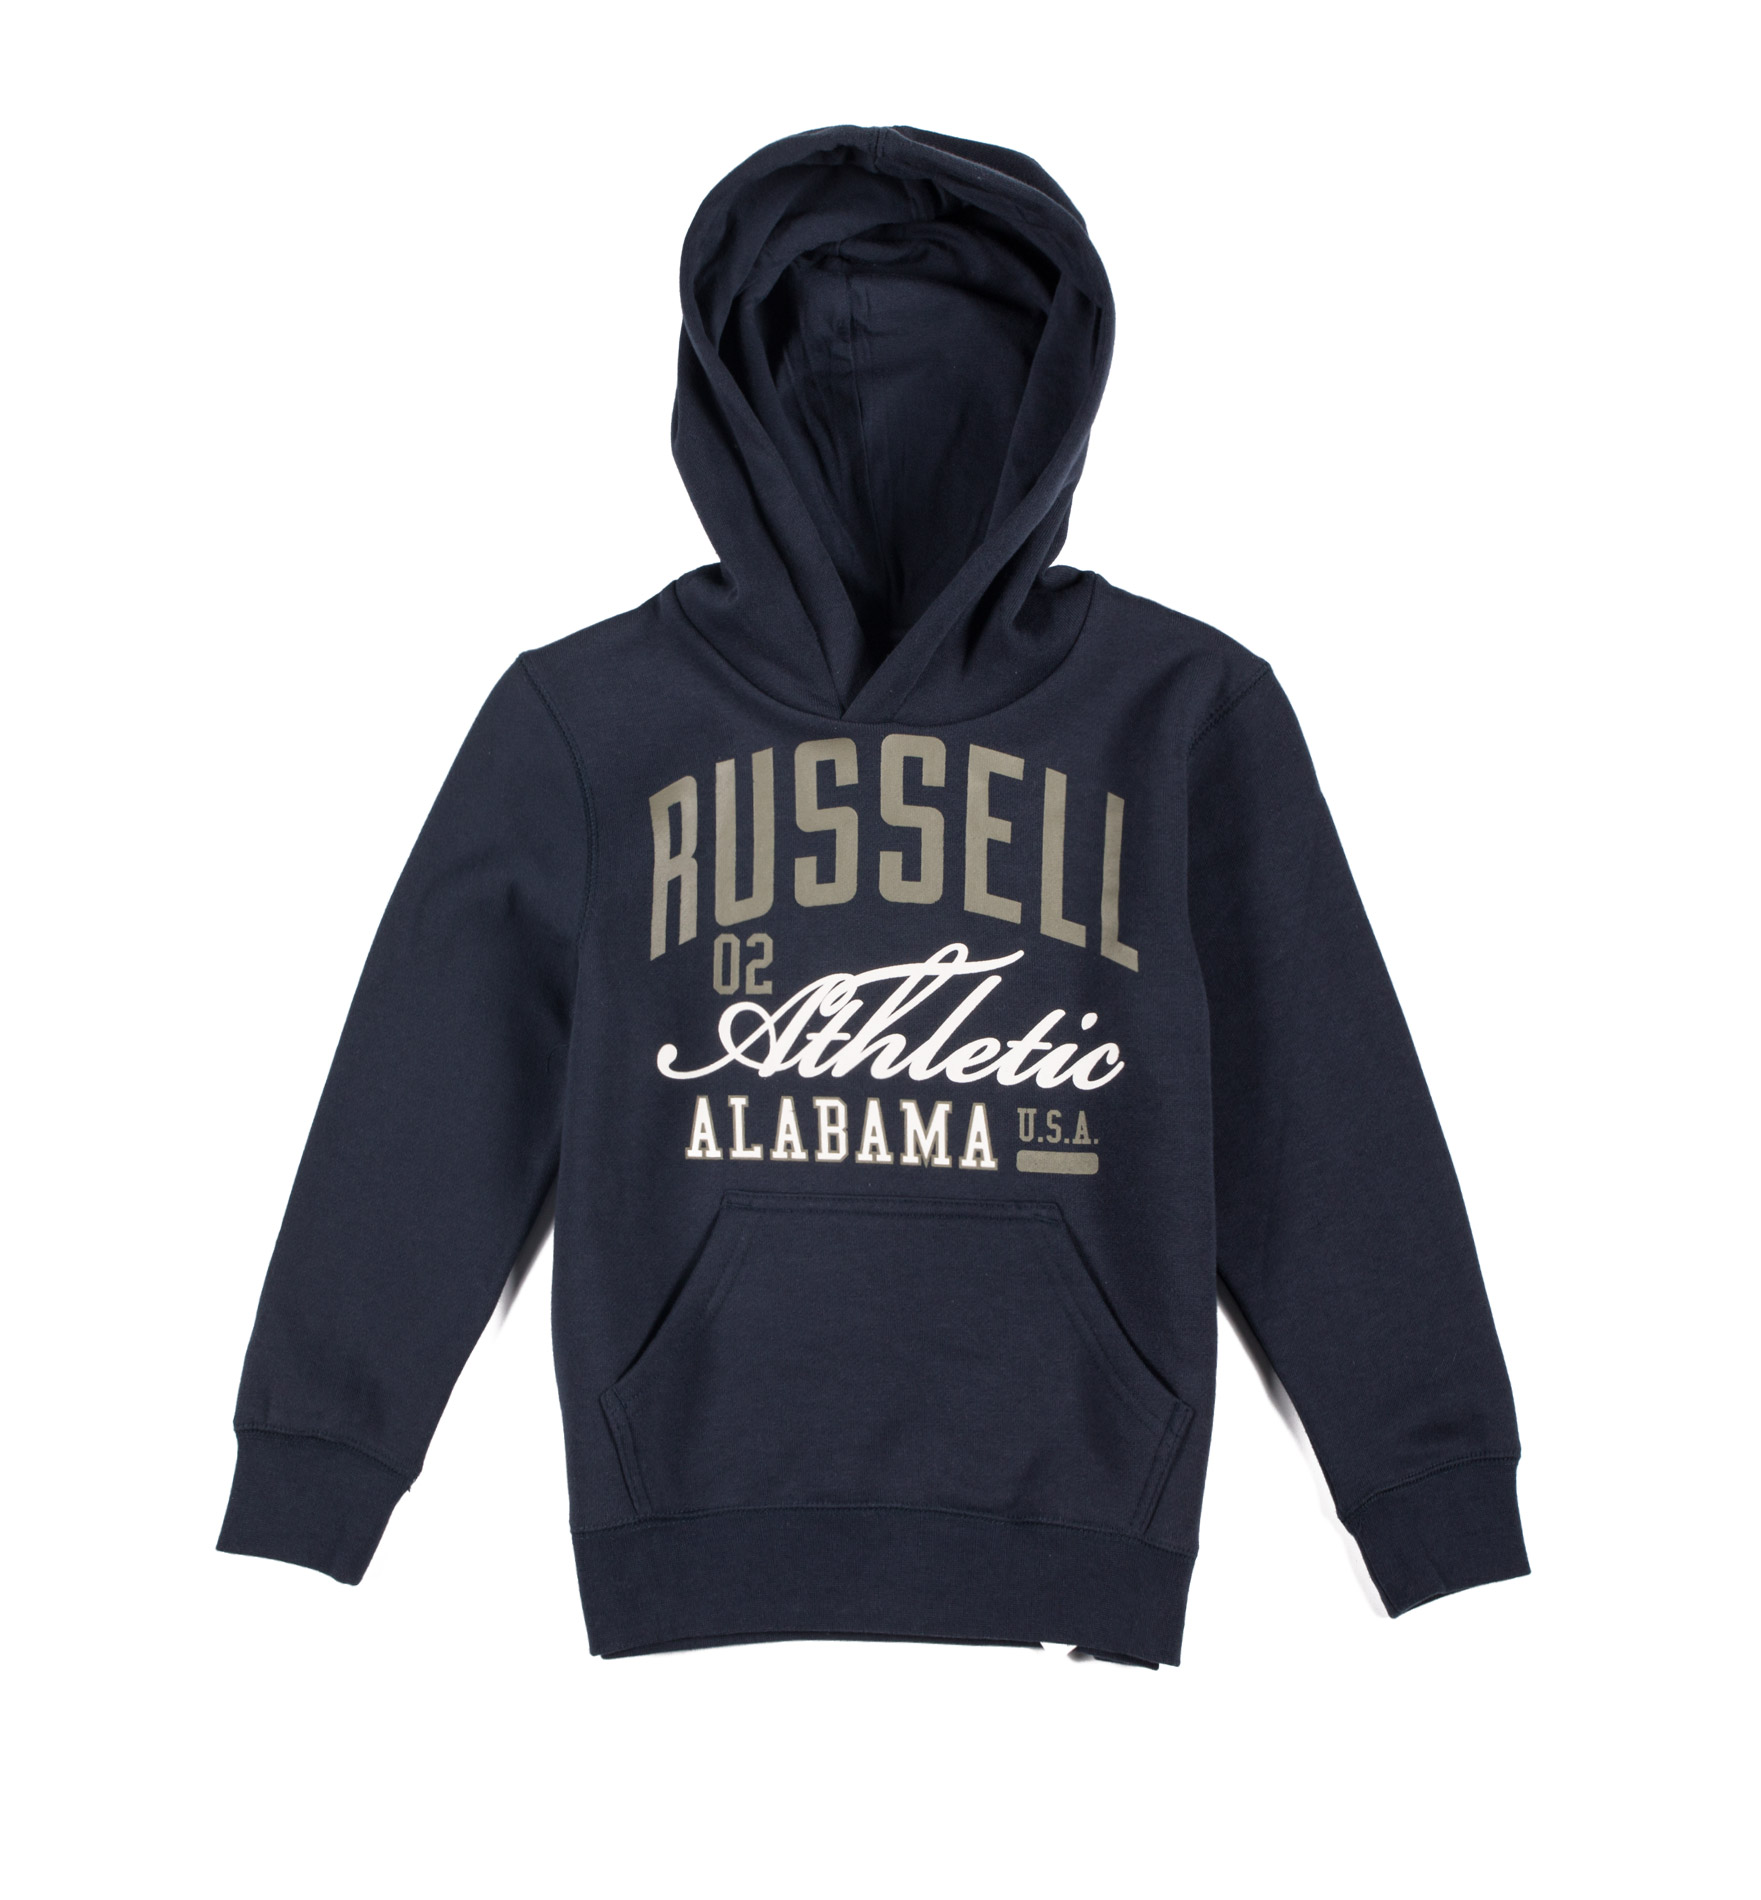 RUSSELL ATHLETIC PULL OVER HOODIE A7-914-2-190 Μπλε παιδι   ενδυματα   μπλούζες